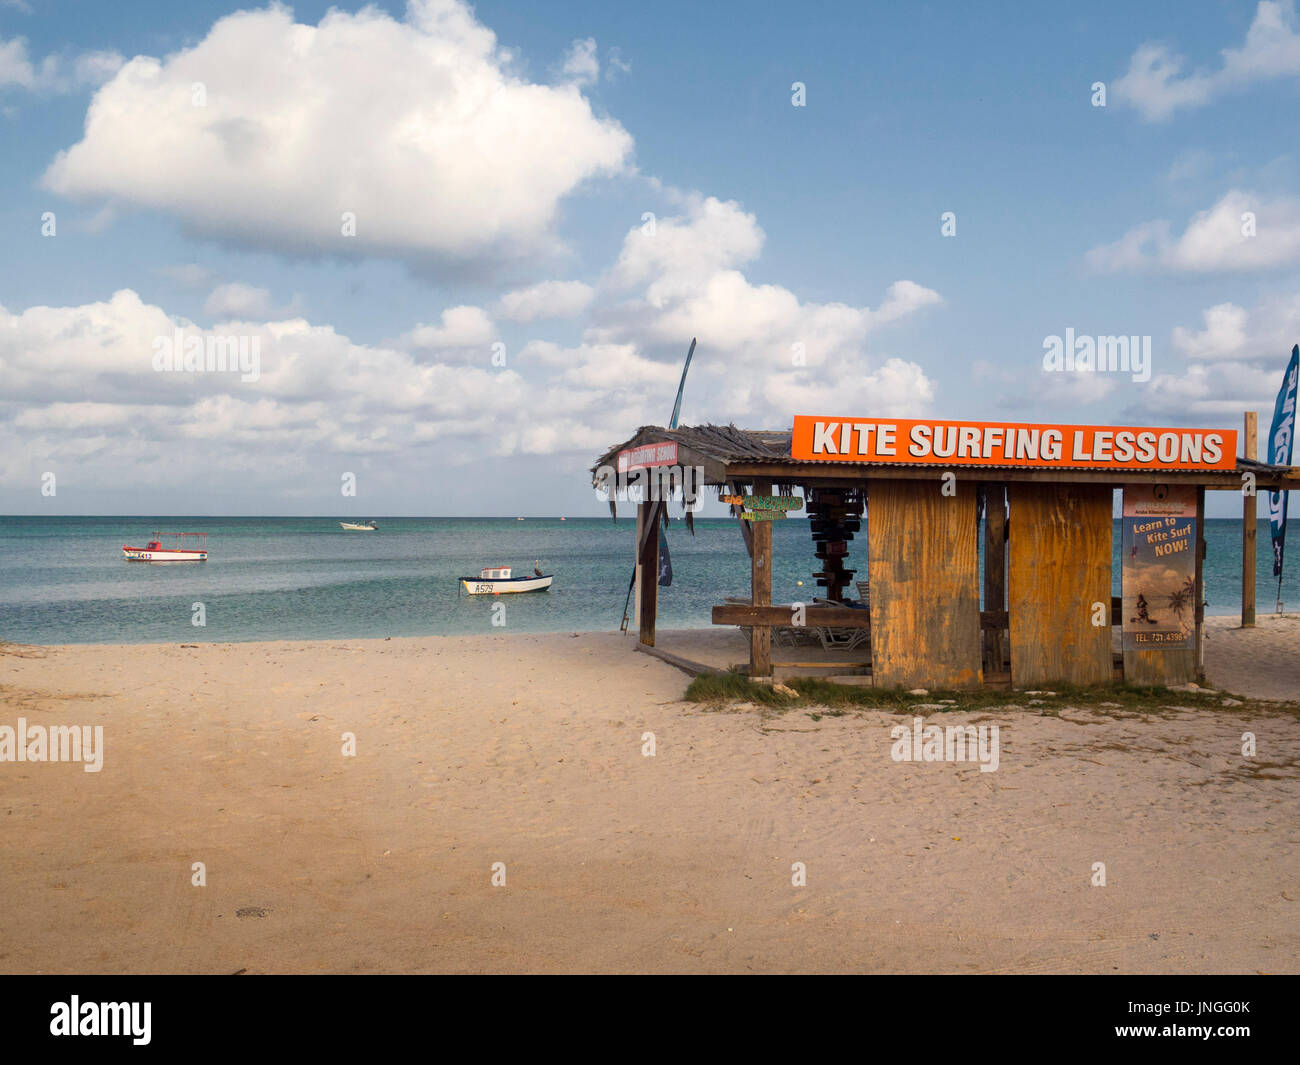 Kite surfing school. lessons hut on beach - Stock Image